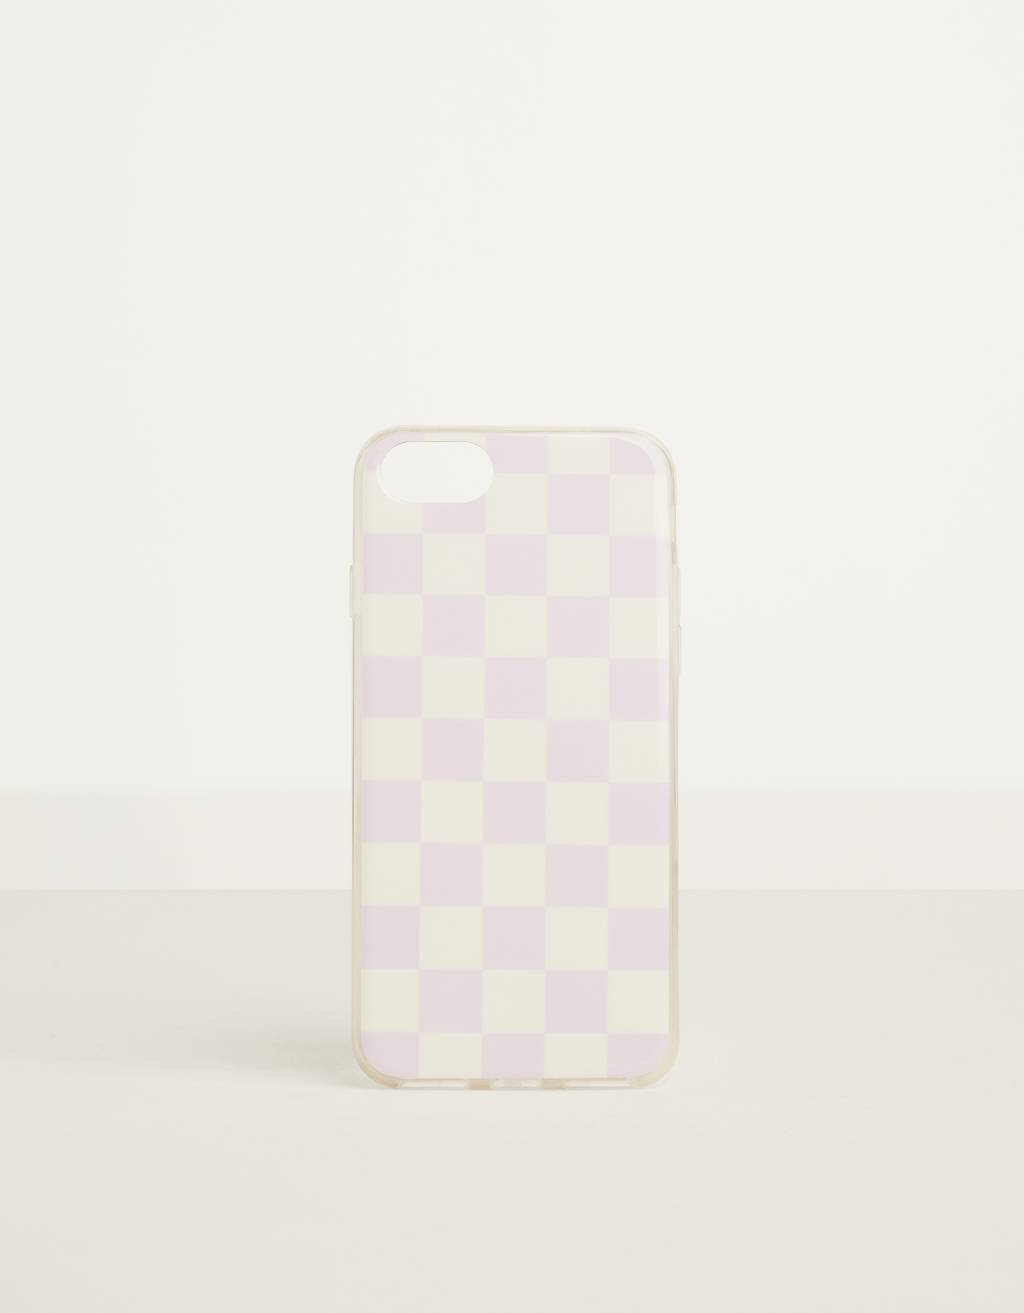 Checked iPhone 6 / 6S / 7 / 8 case